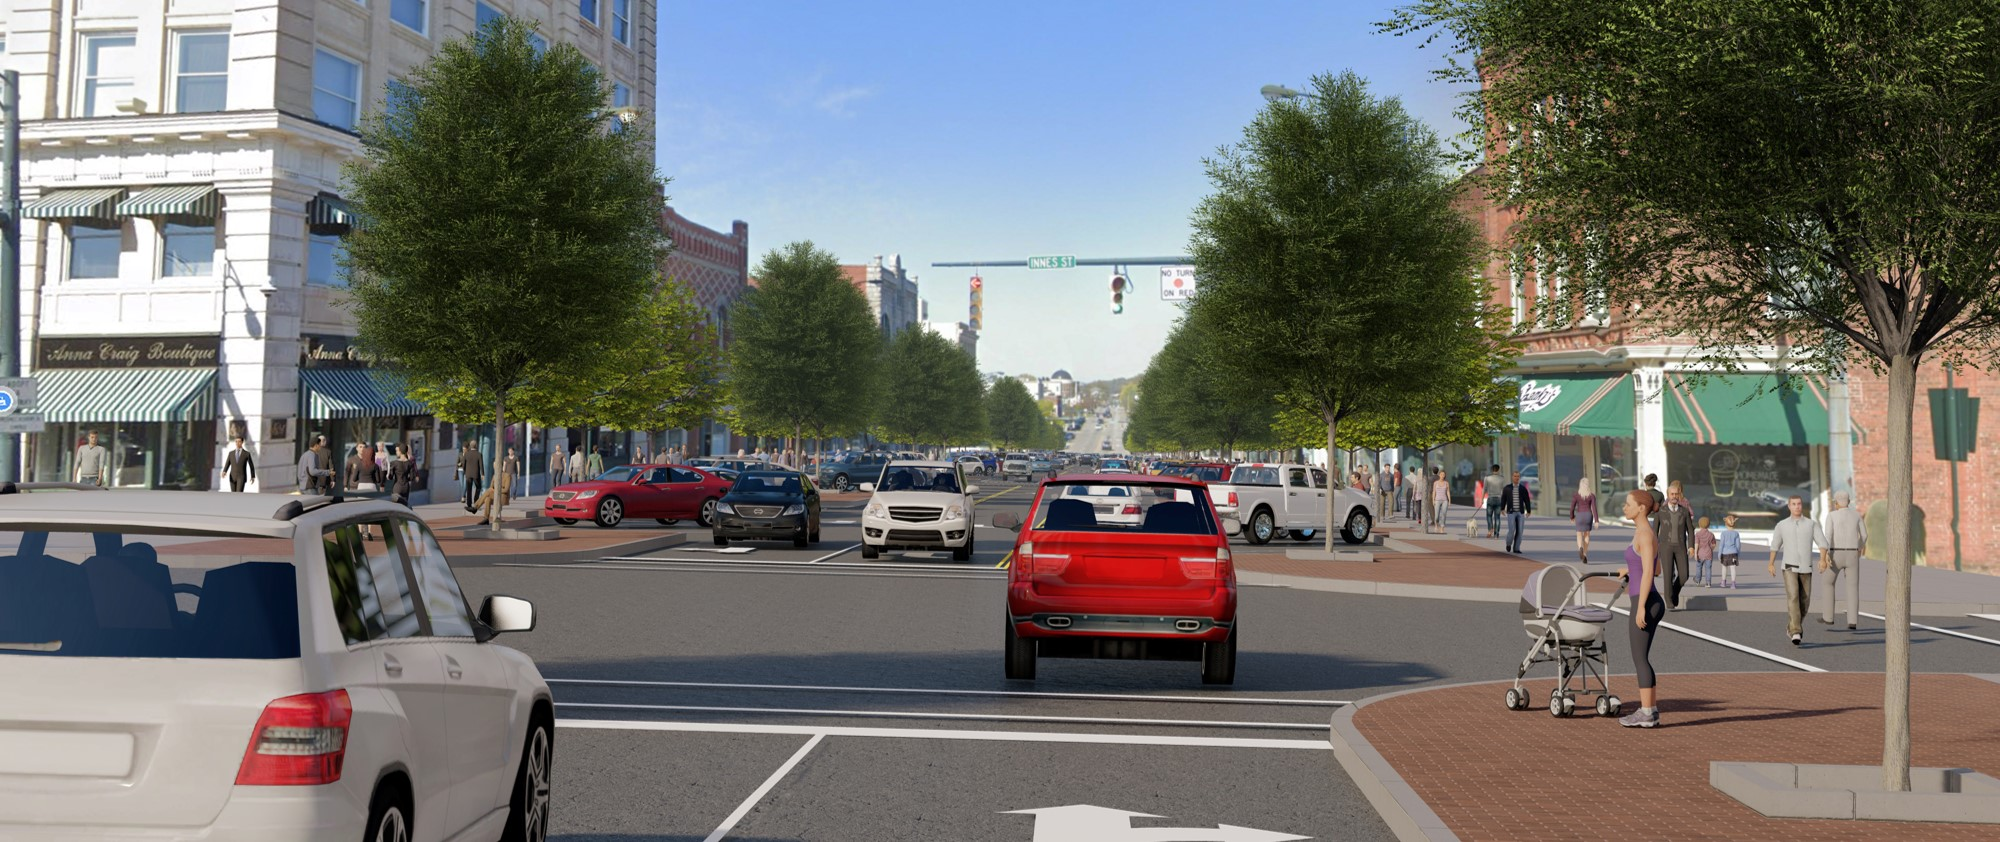 Mockup image of renovated downtown salisbury